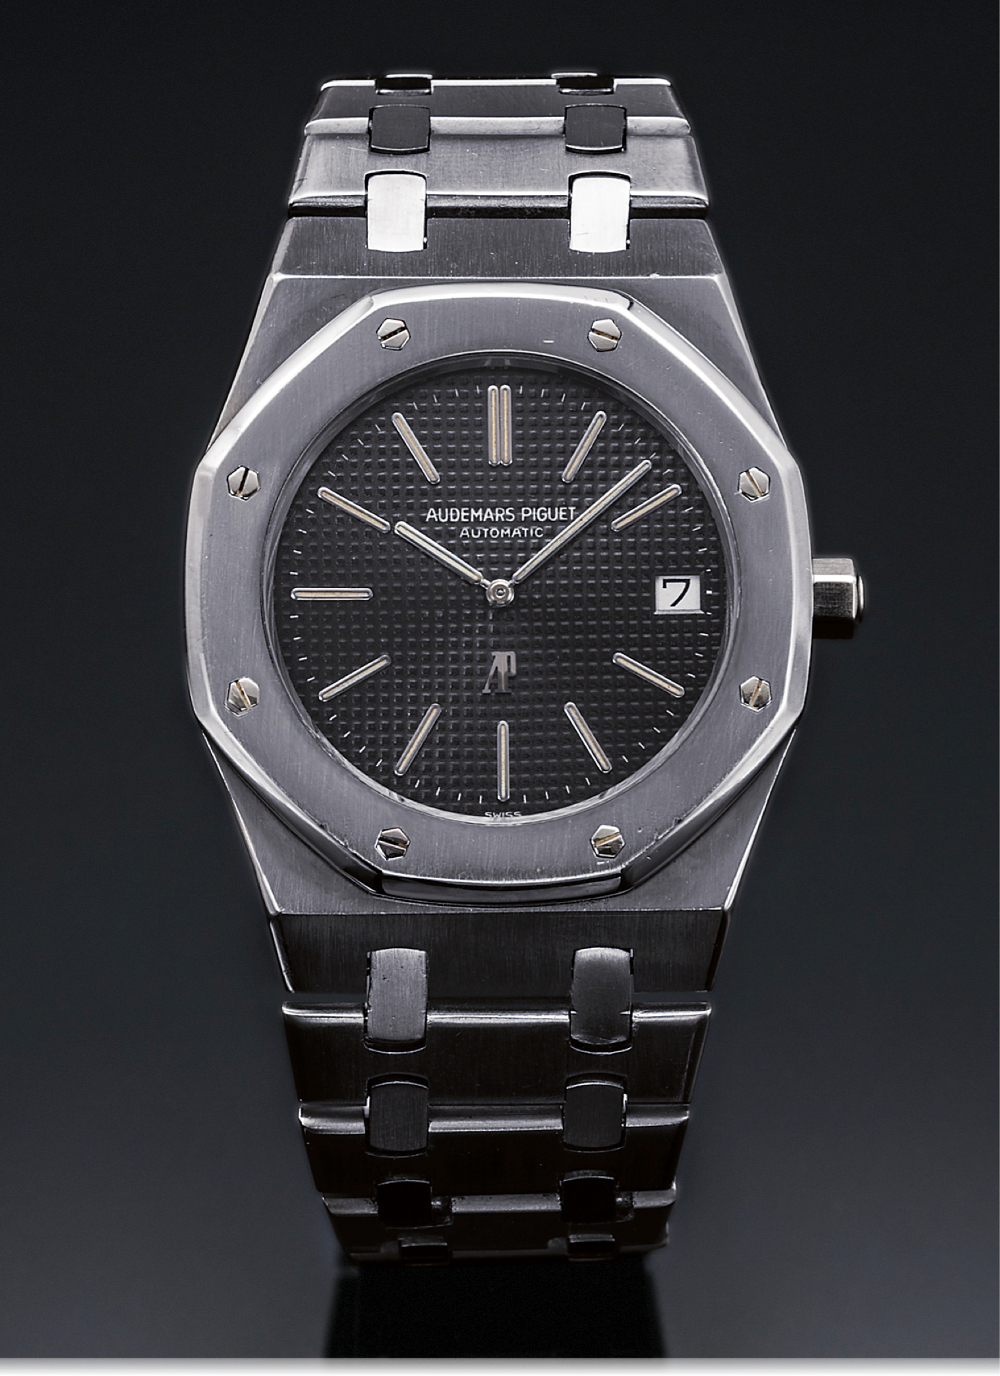 The Audemars Piguet Series A Ref. 5402. Photo courtesy of Antiqourum.